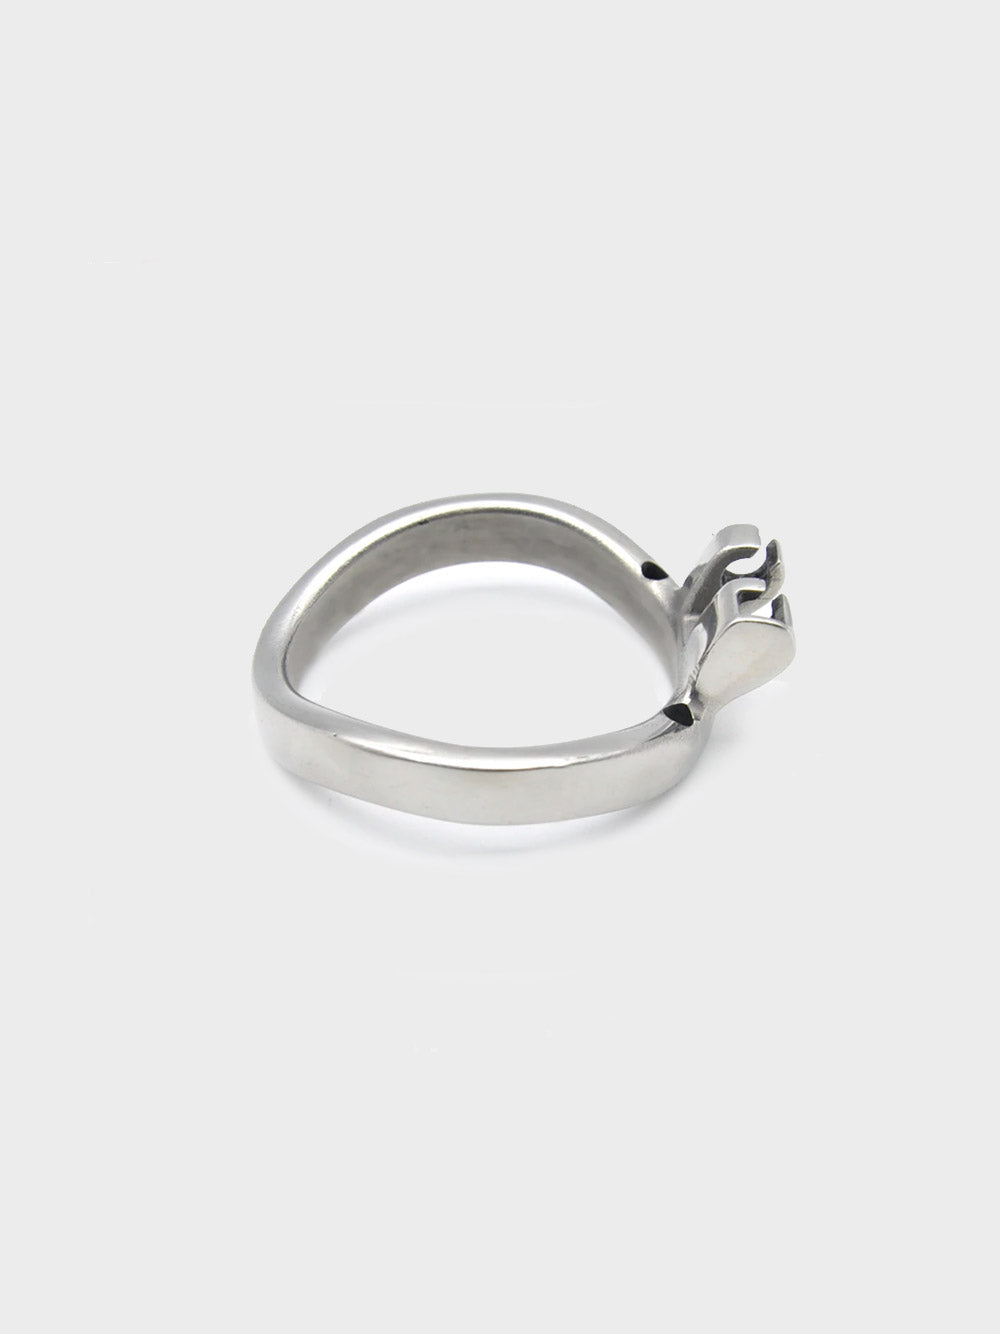 A steel ring for the mens chastity cage